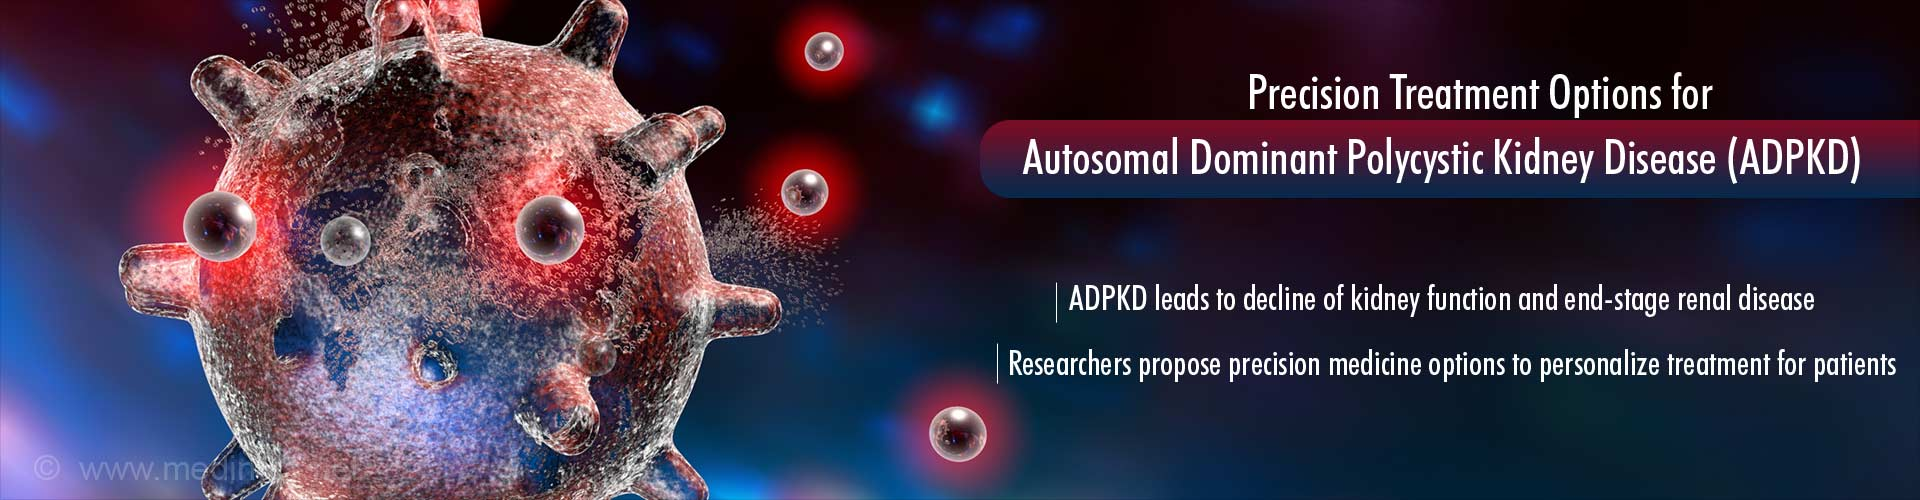 New Precision Medicine Treatment Options for Autosomal Dominant Polycystic Kidney Disease